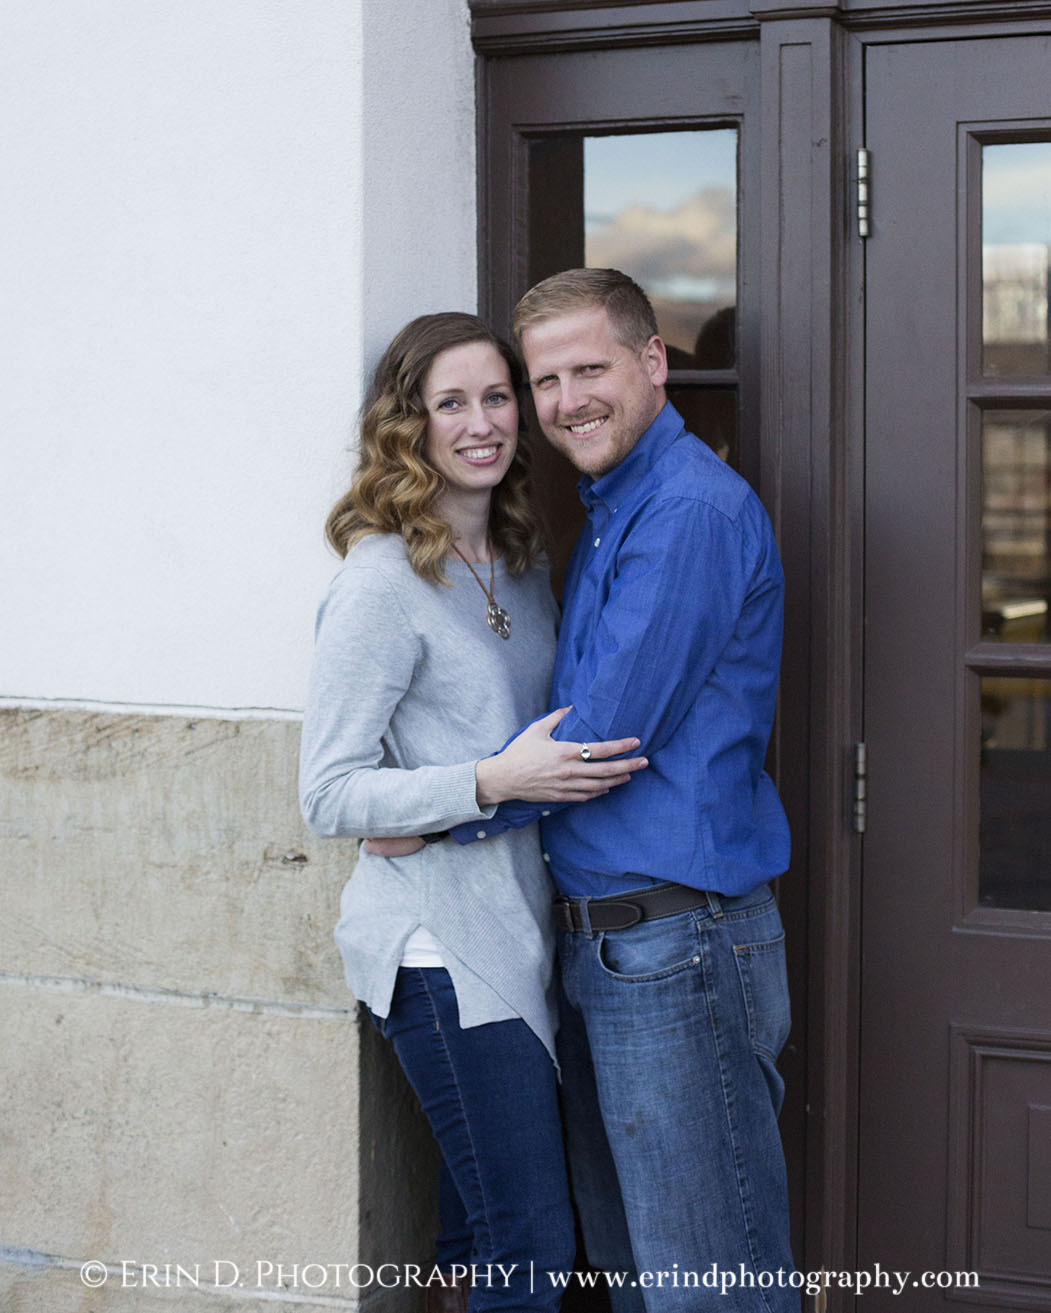 Boise Depot Family Portraits | © Erin D. Photography